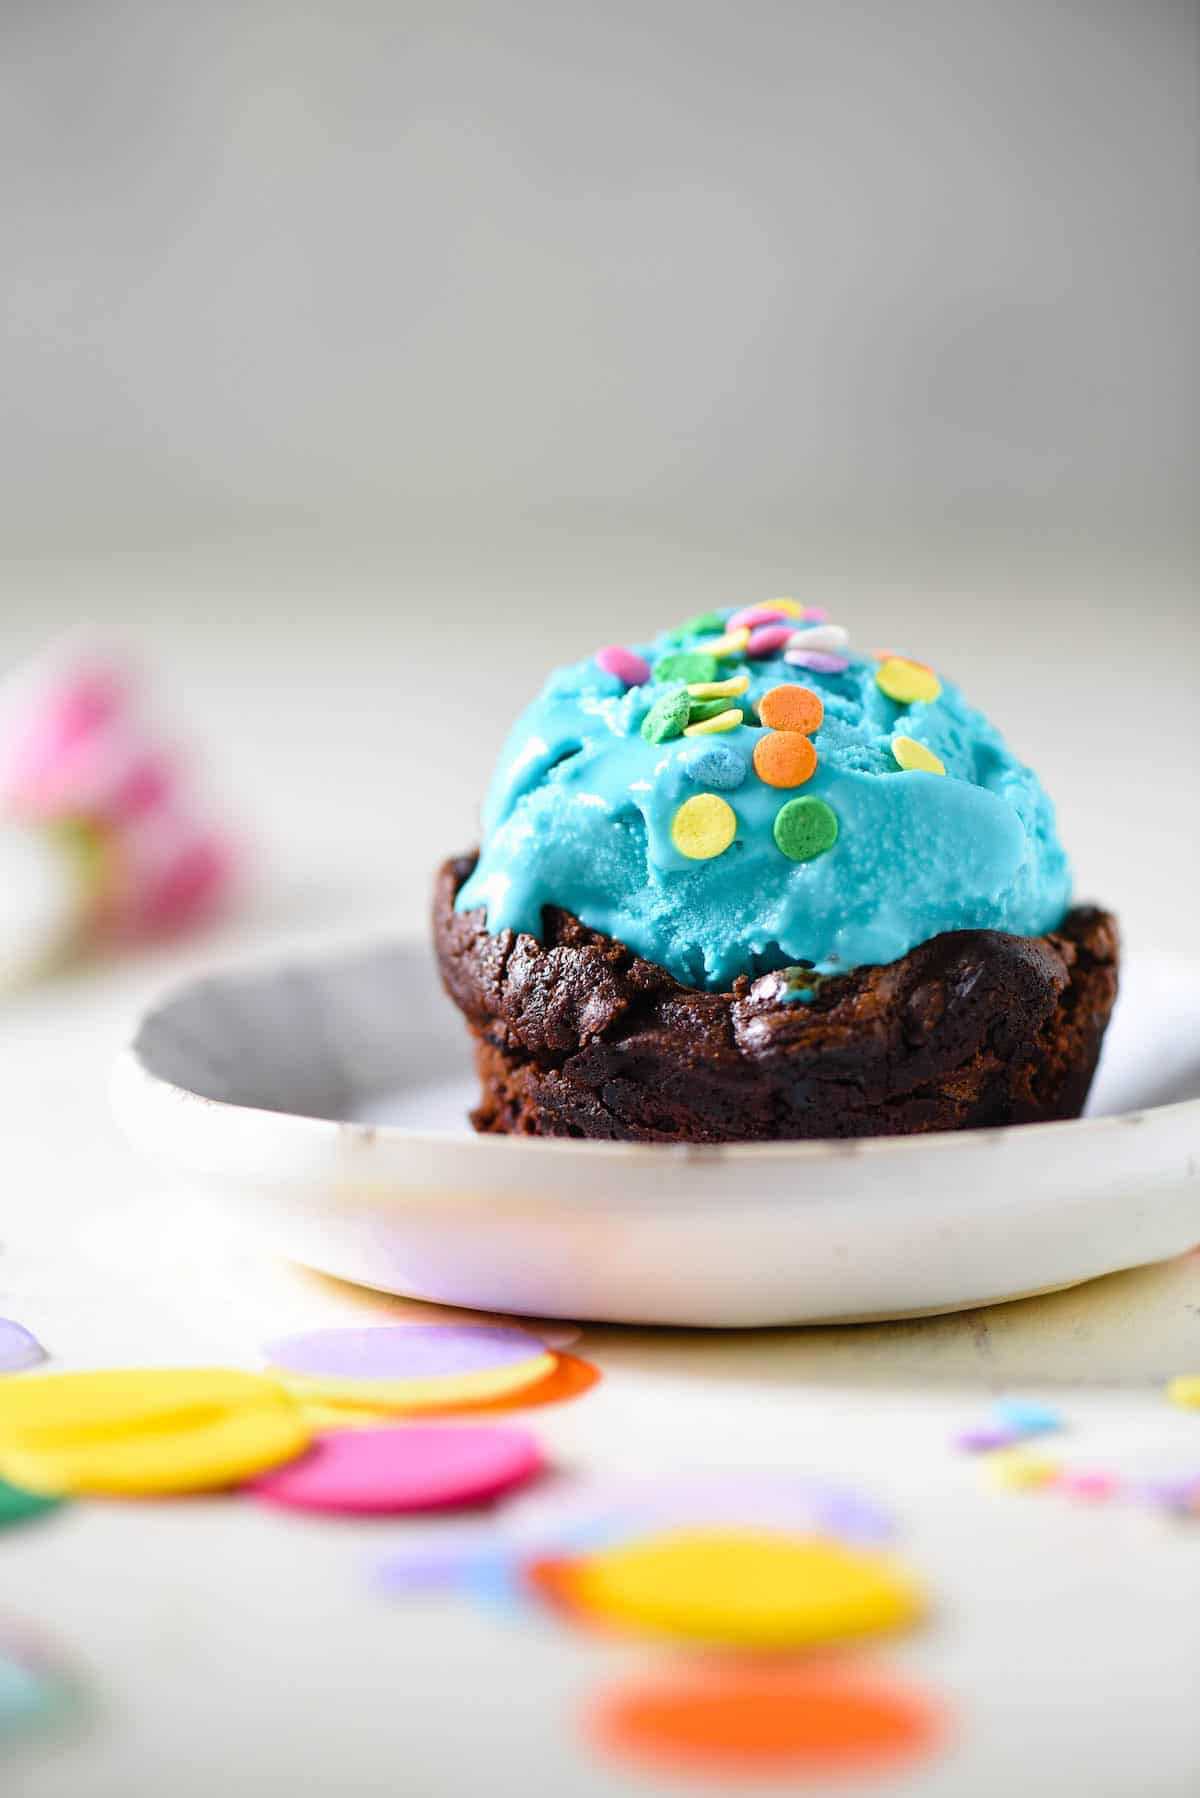 Celebrate one sweet birthday with these Brownie Bowls for Ice Cream. No special equipment needed - they're made in a cupcake pan! | foxeslovelemons.com